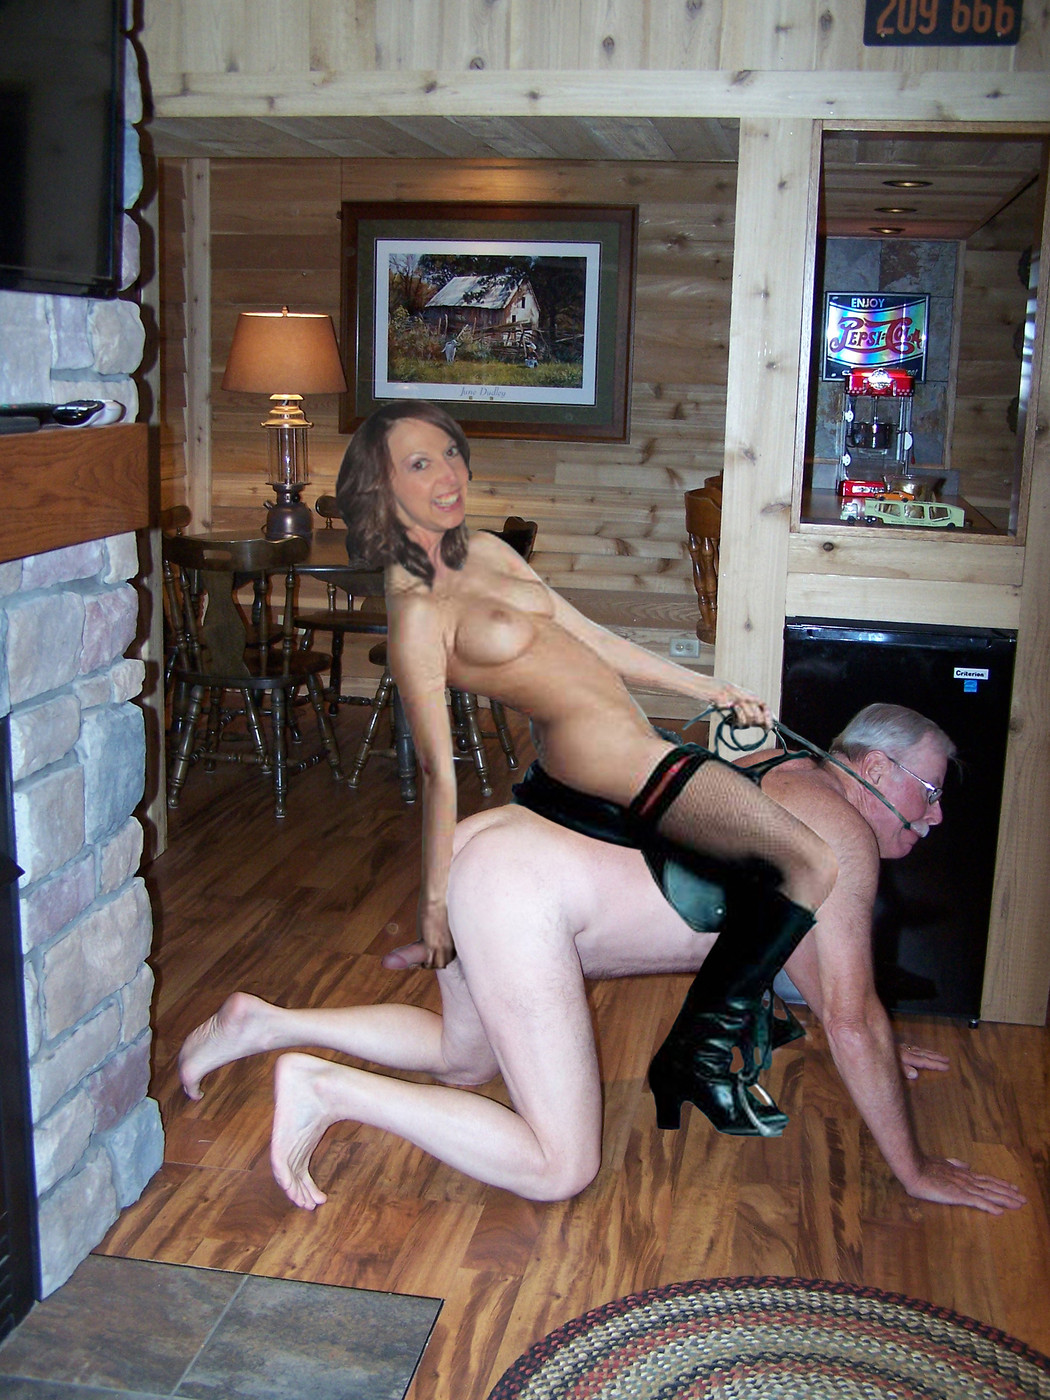 Mistress Kate loves to play jockey. If I don't perform to her satisfaction she grabs me by the cock and balls and starts squeezing and pulling them forcing me to crawl and buck for her!